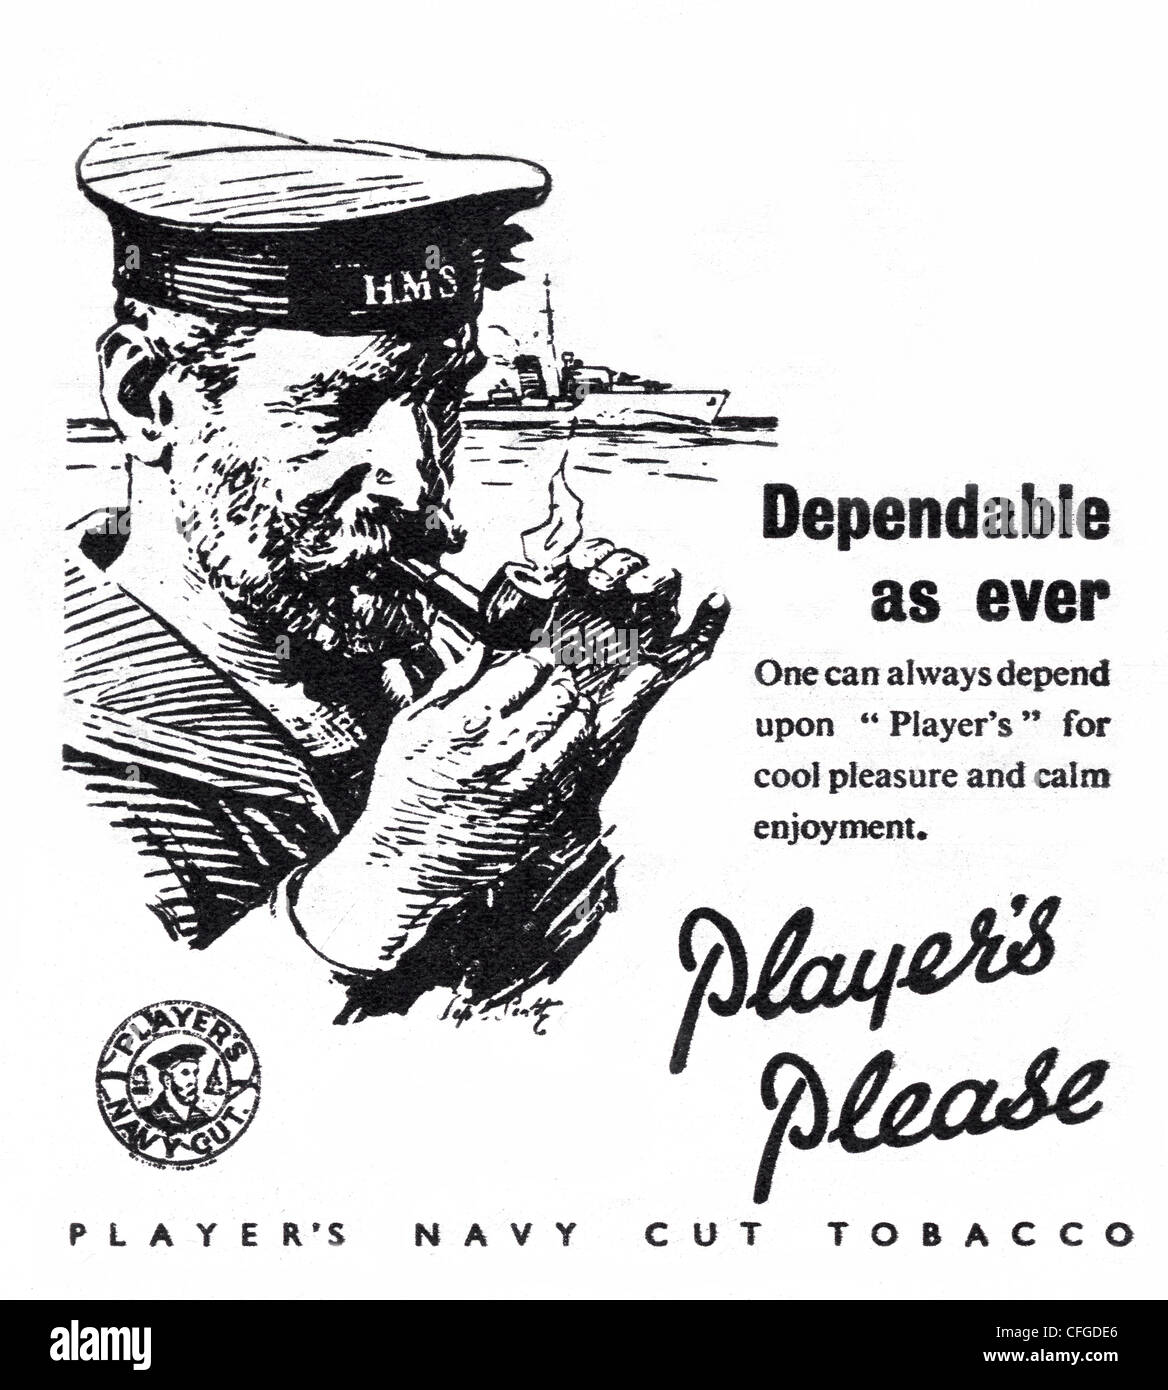 Players Airman Navy Cut tobacco advert from 1946 - Stock Image